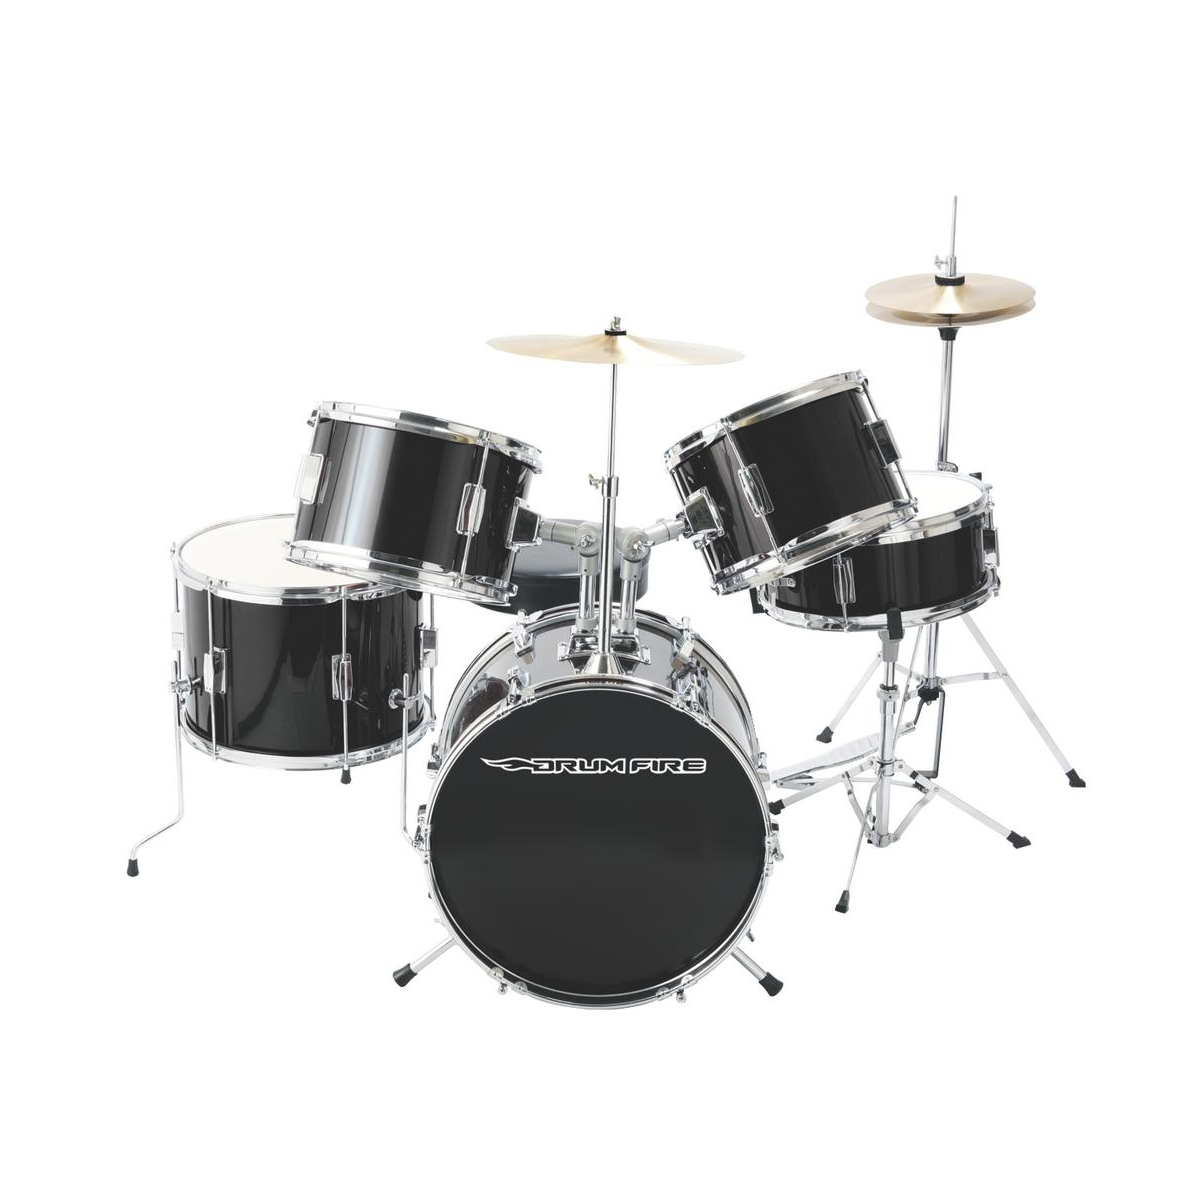 Jr. Drumset - Drumfire with Cymbals